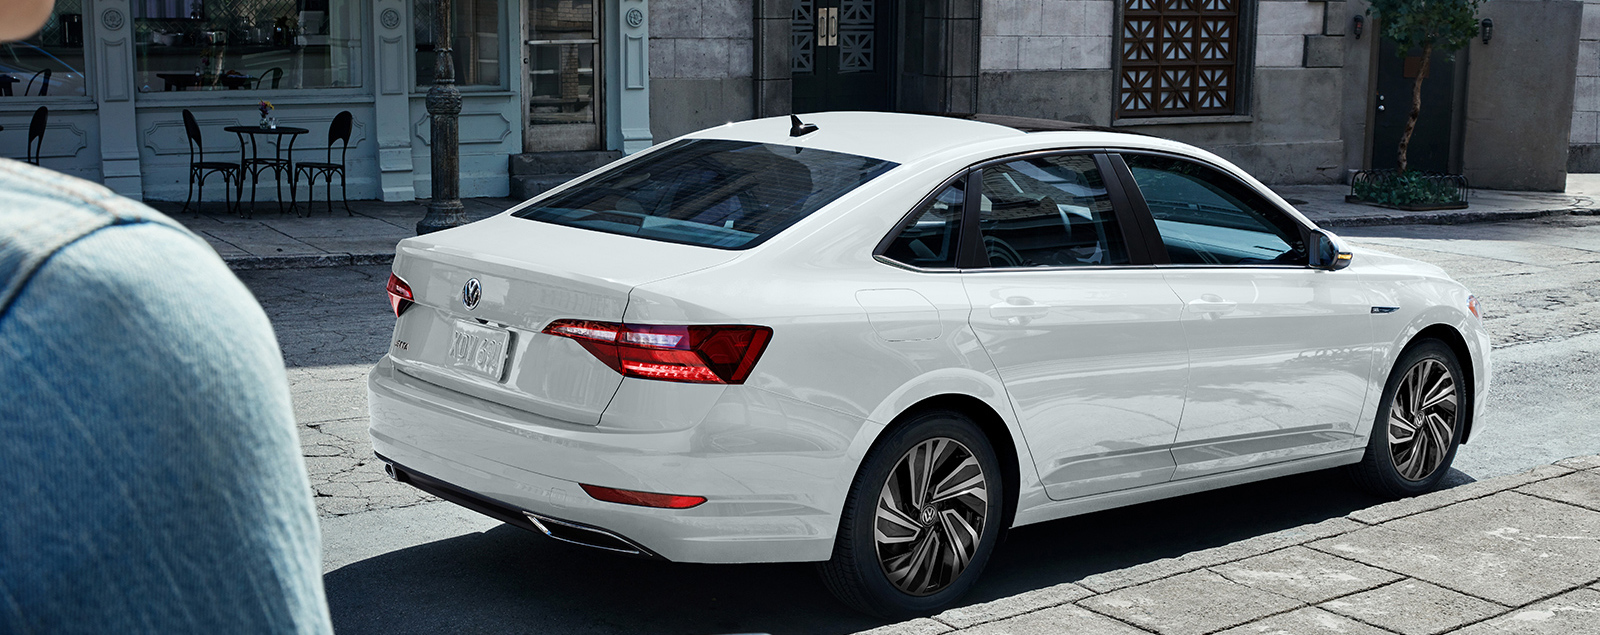 2020 Volkswagen Jetta Leasing near College Park, MD